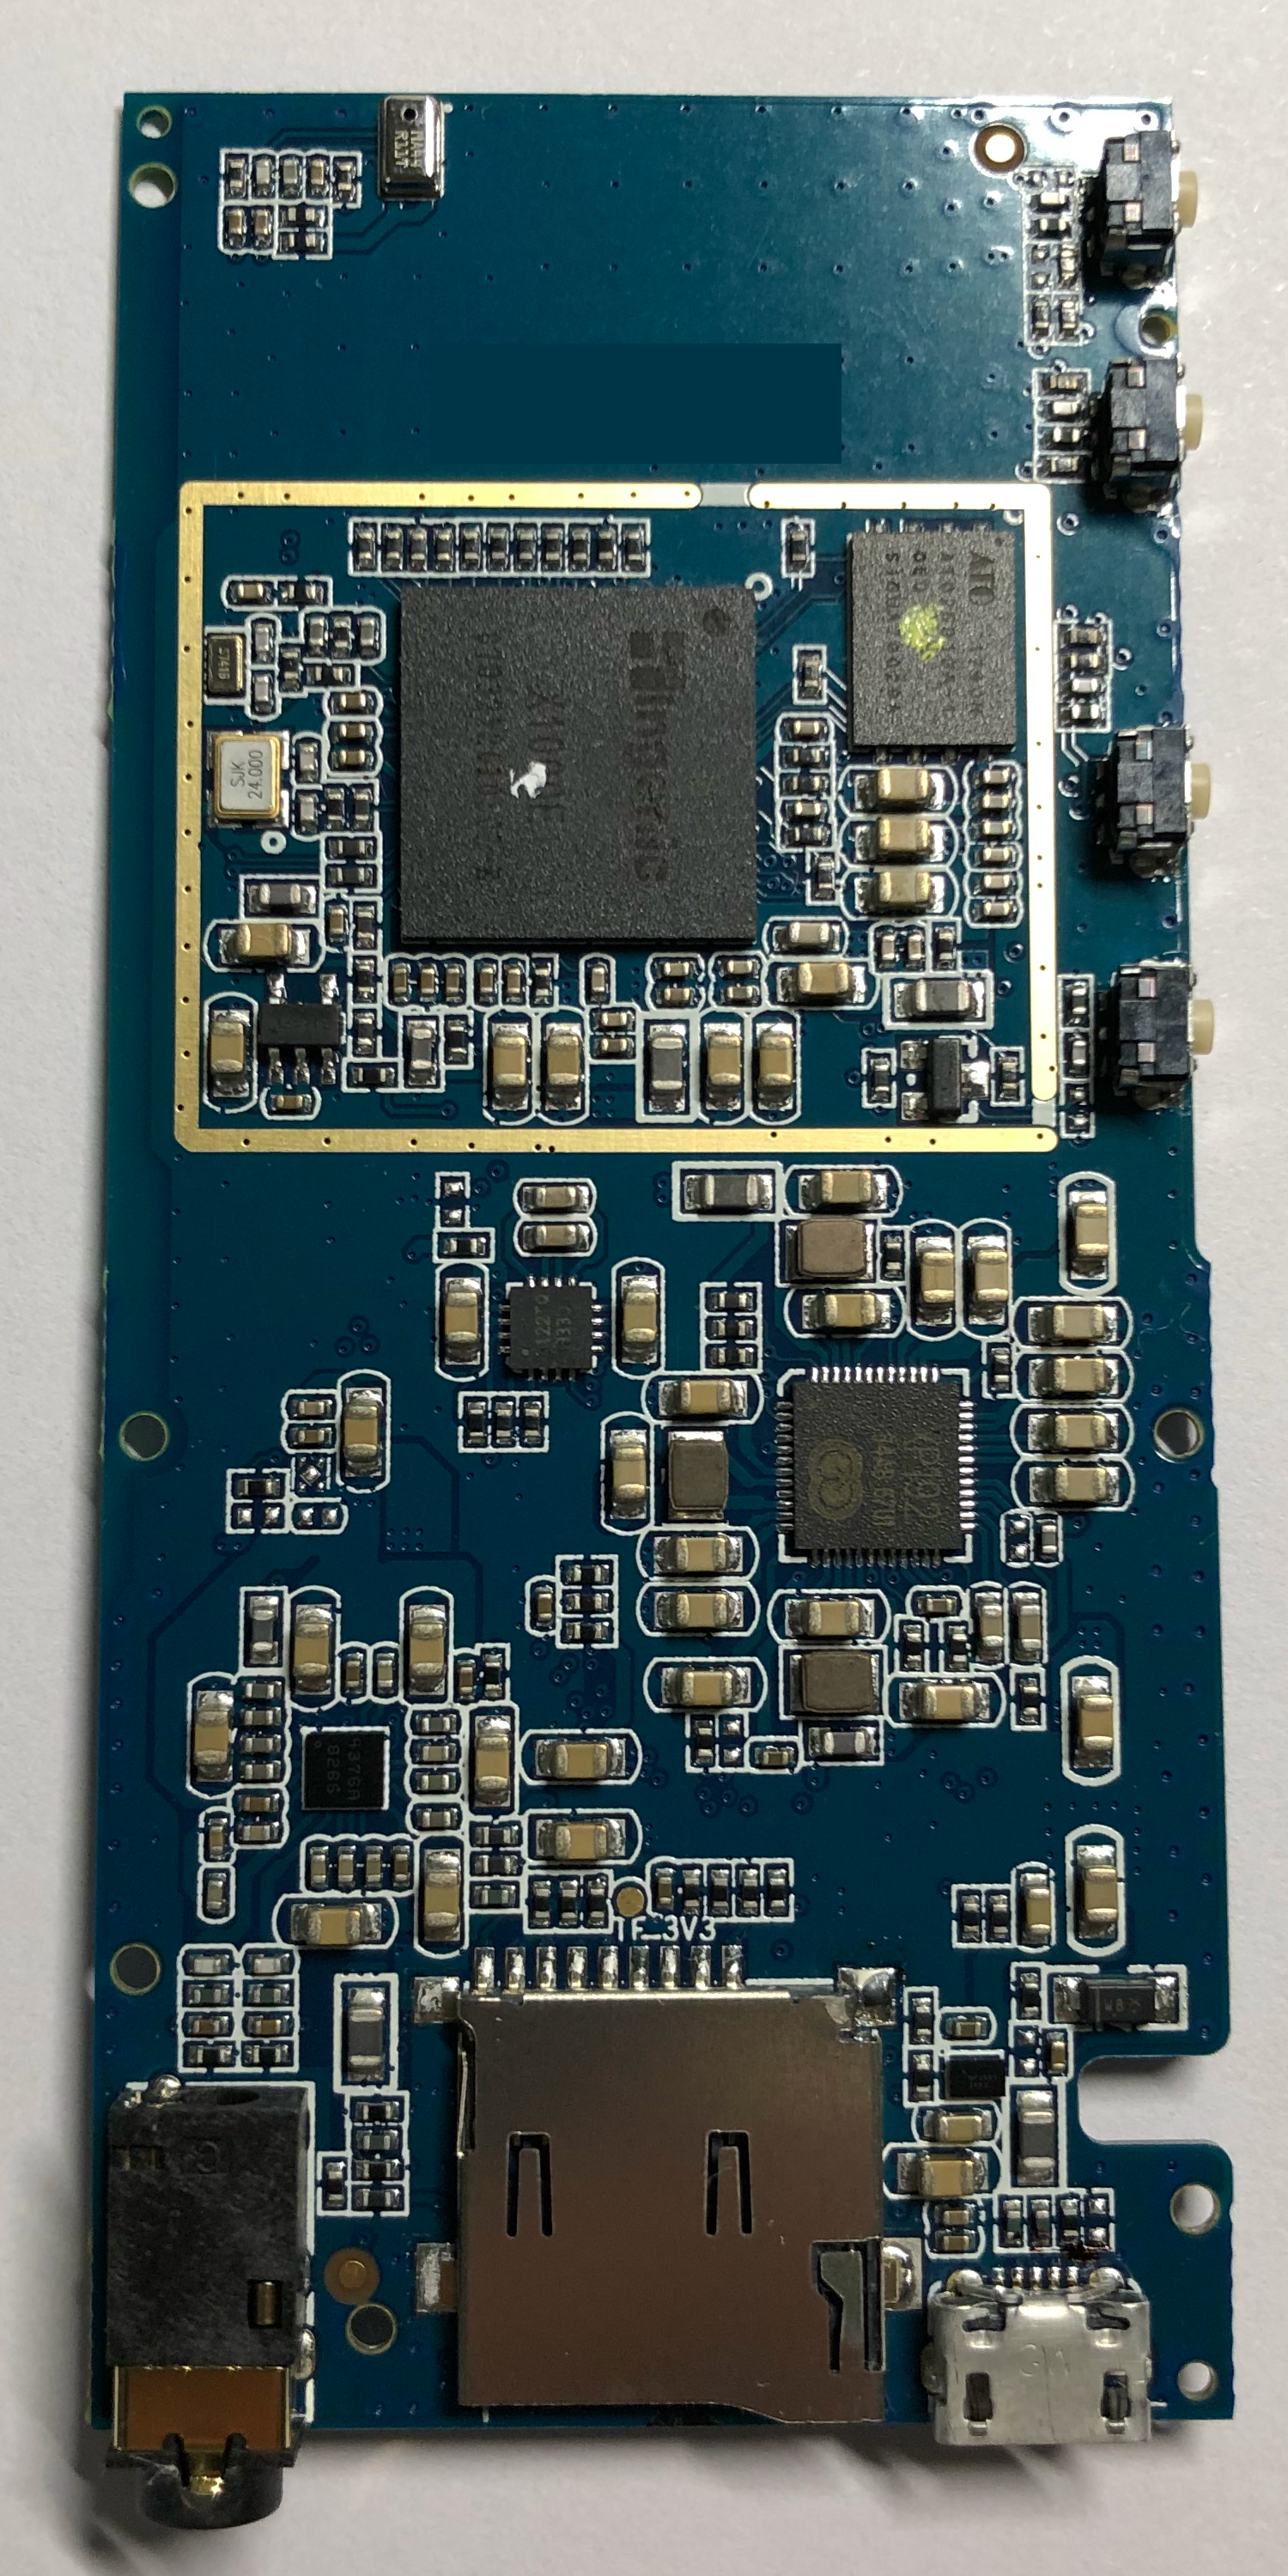 PCB_back_s.png